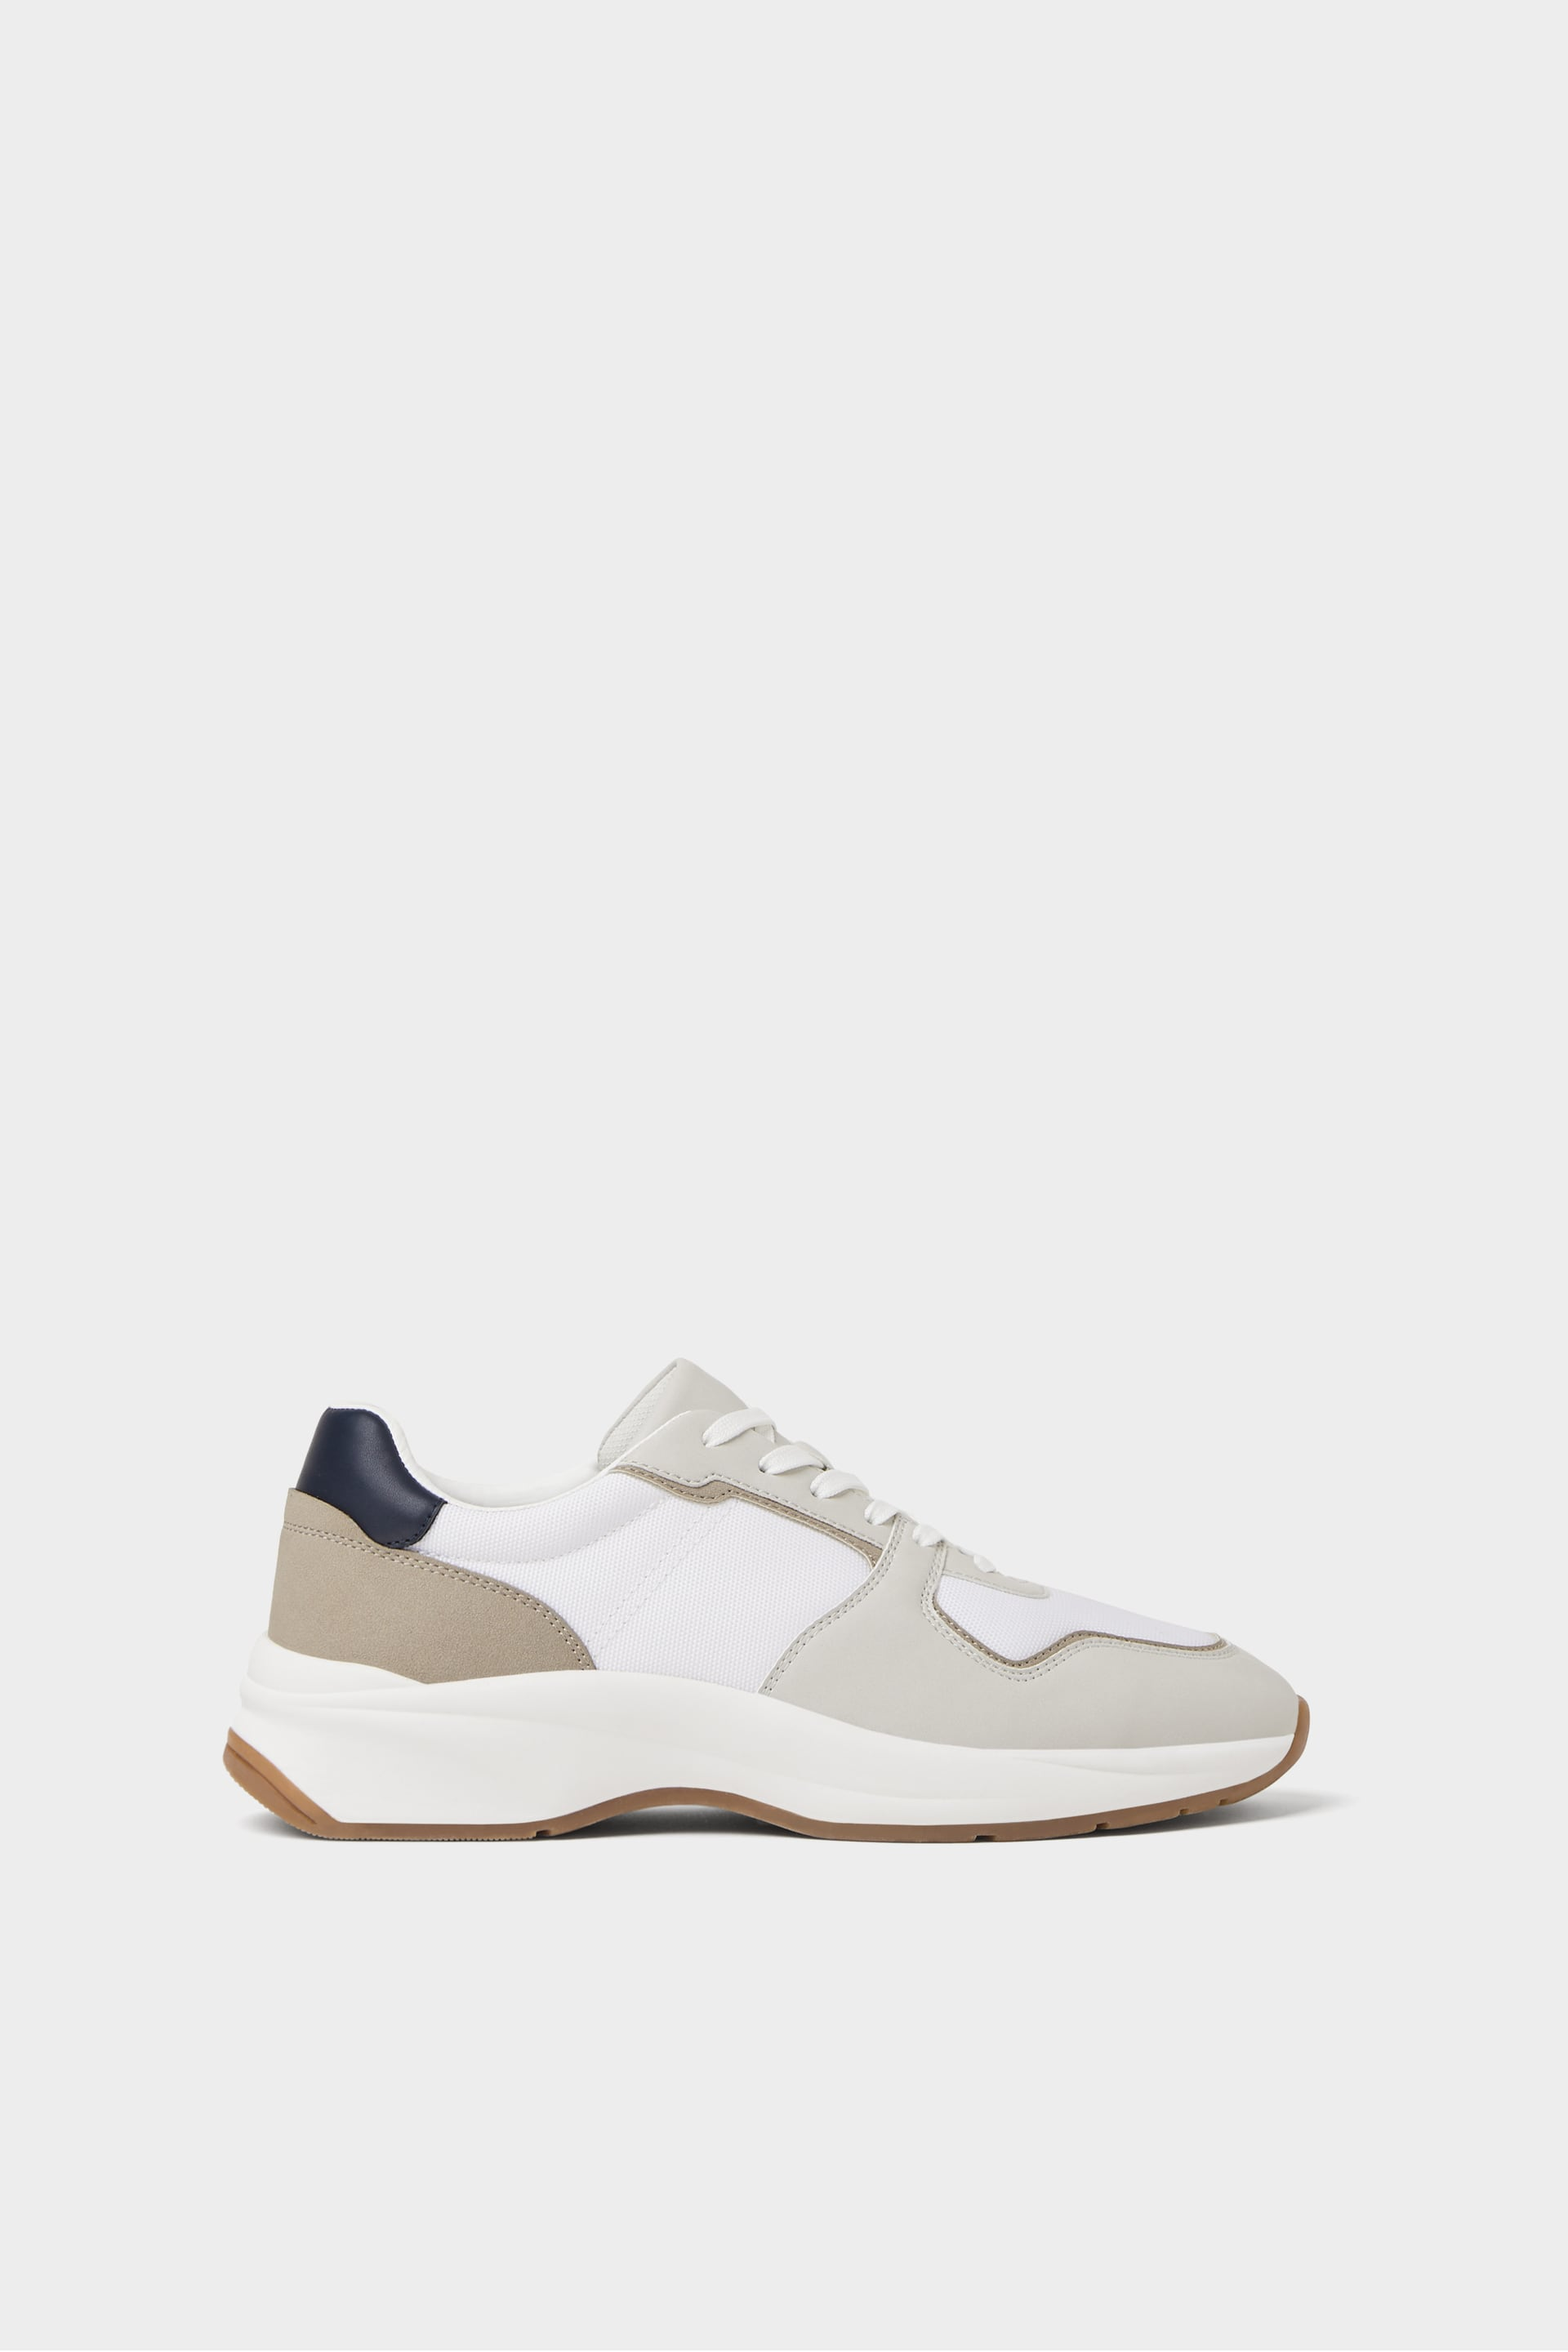 CONTRASTING LACE-UP SNEAKERS